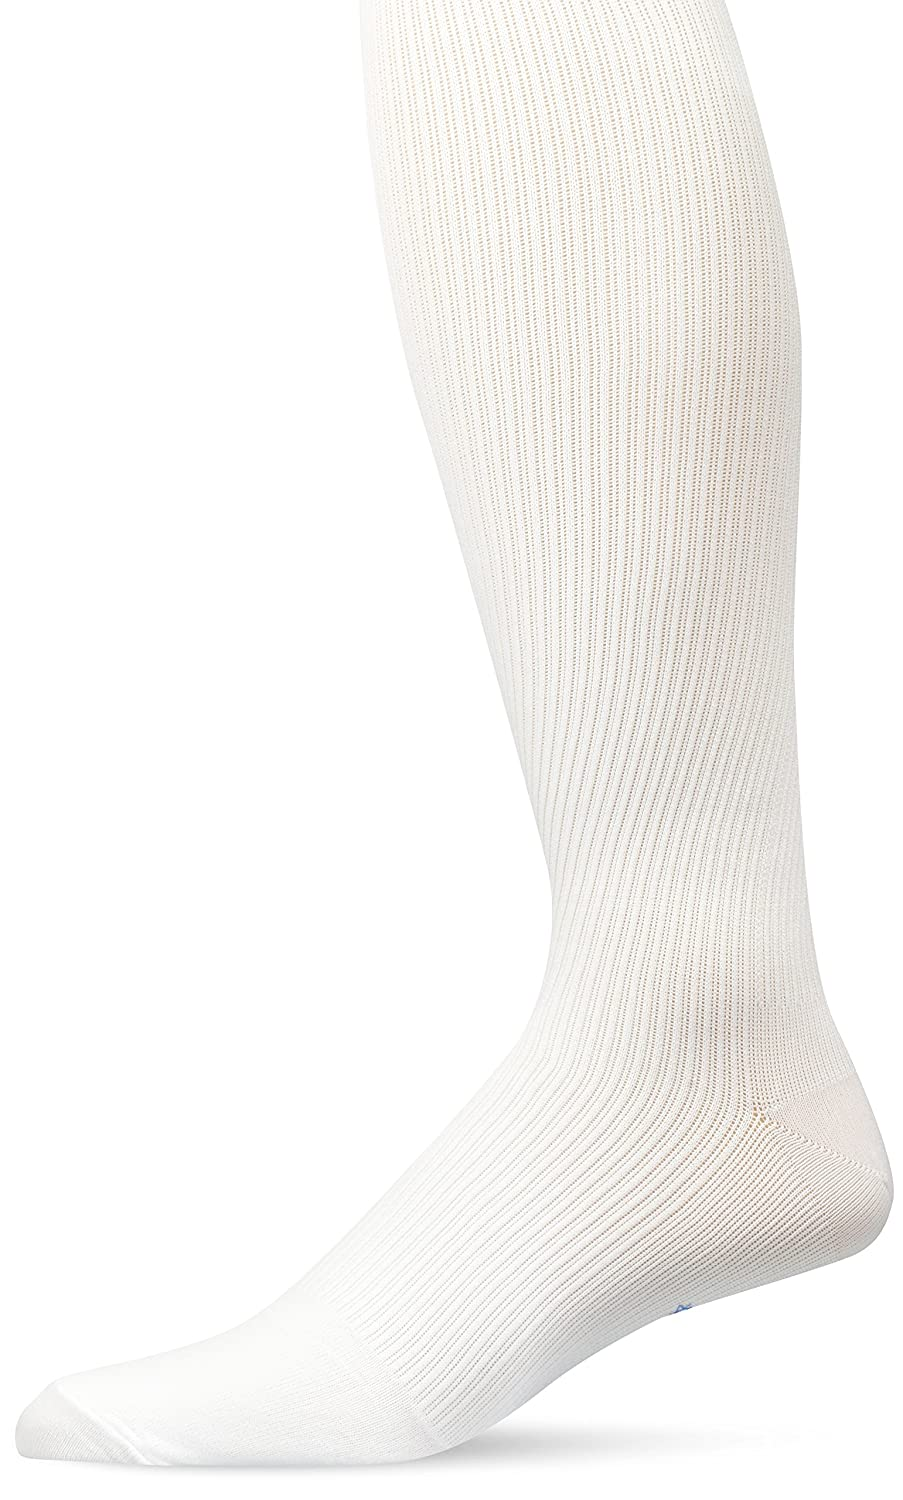 Jobst Support Wear Socks Men/'s Dress Knee High Mild Compression 8-15mmHg